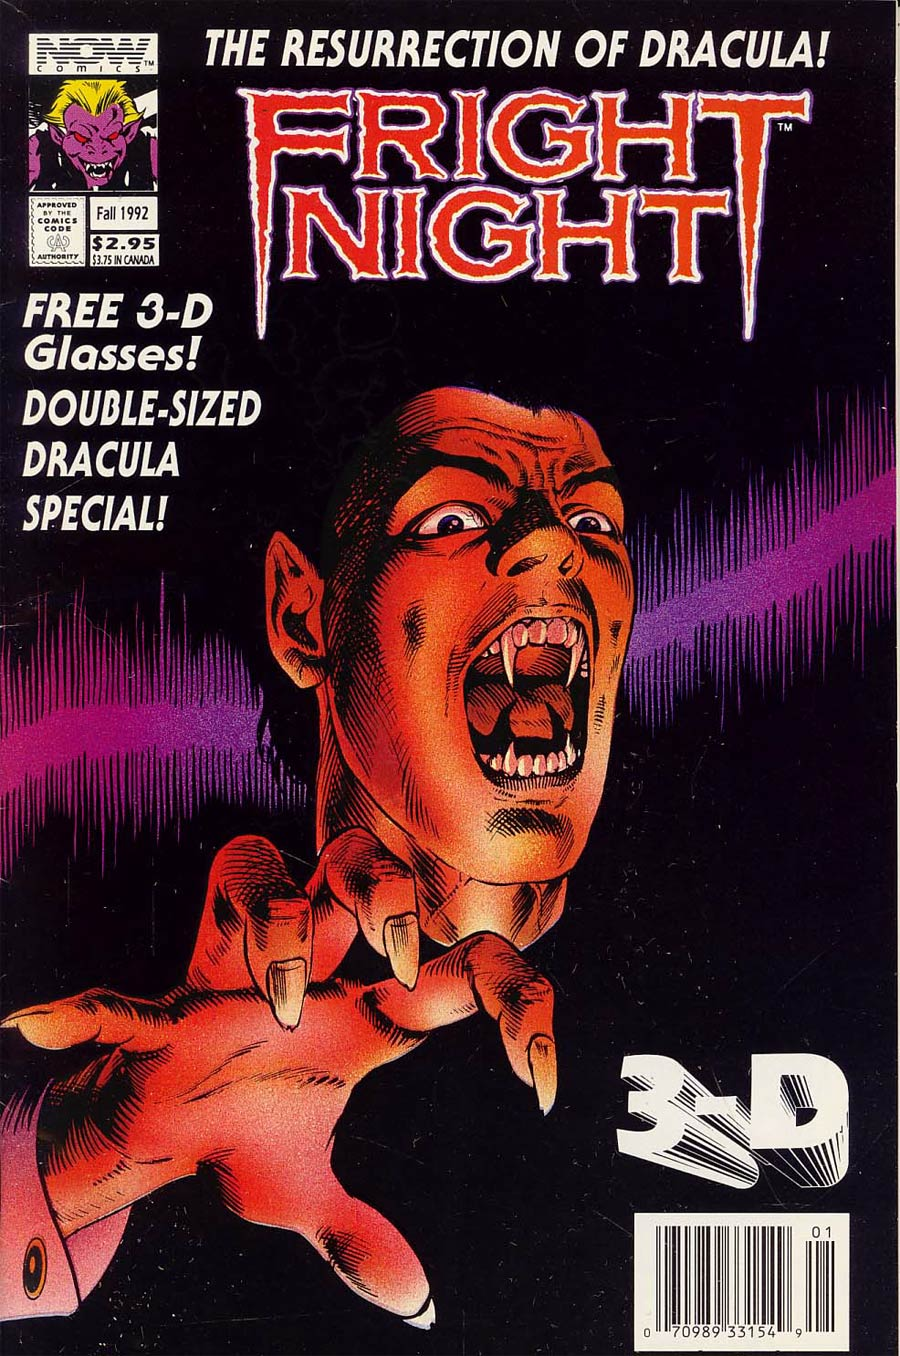 Fright Night 3-D Fall 1992 Special #1 Cover A With Polybag